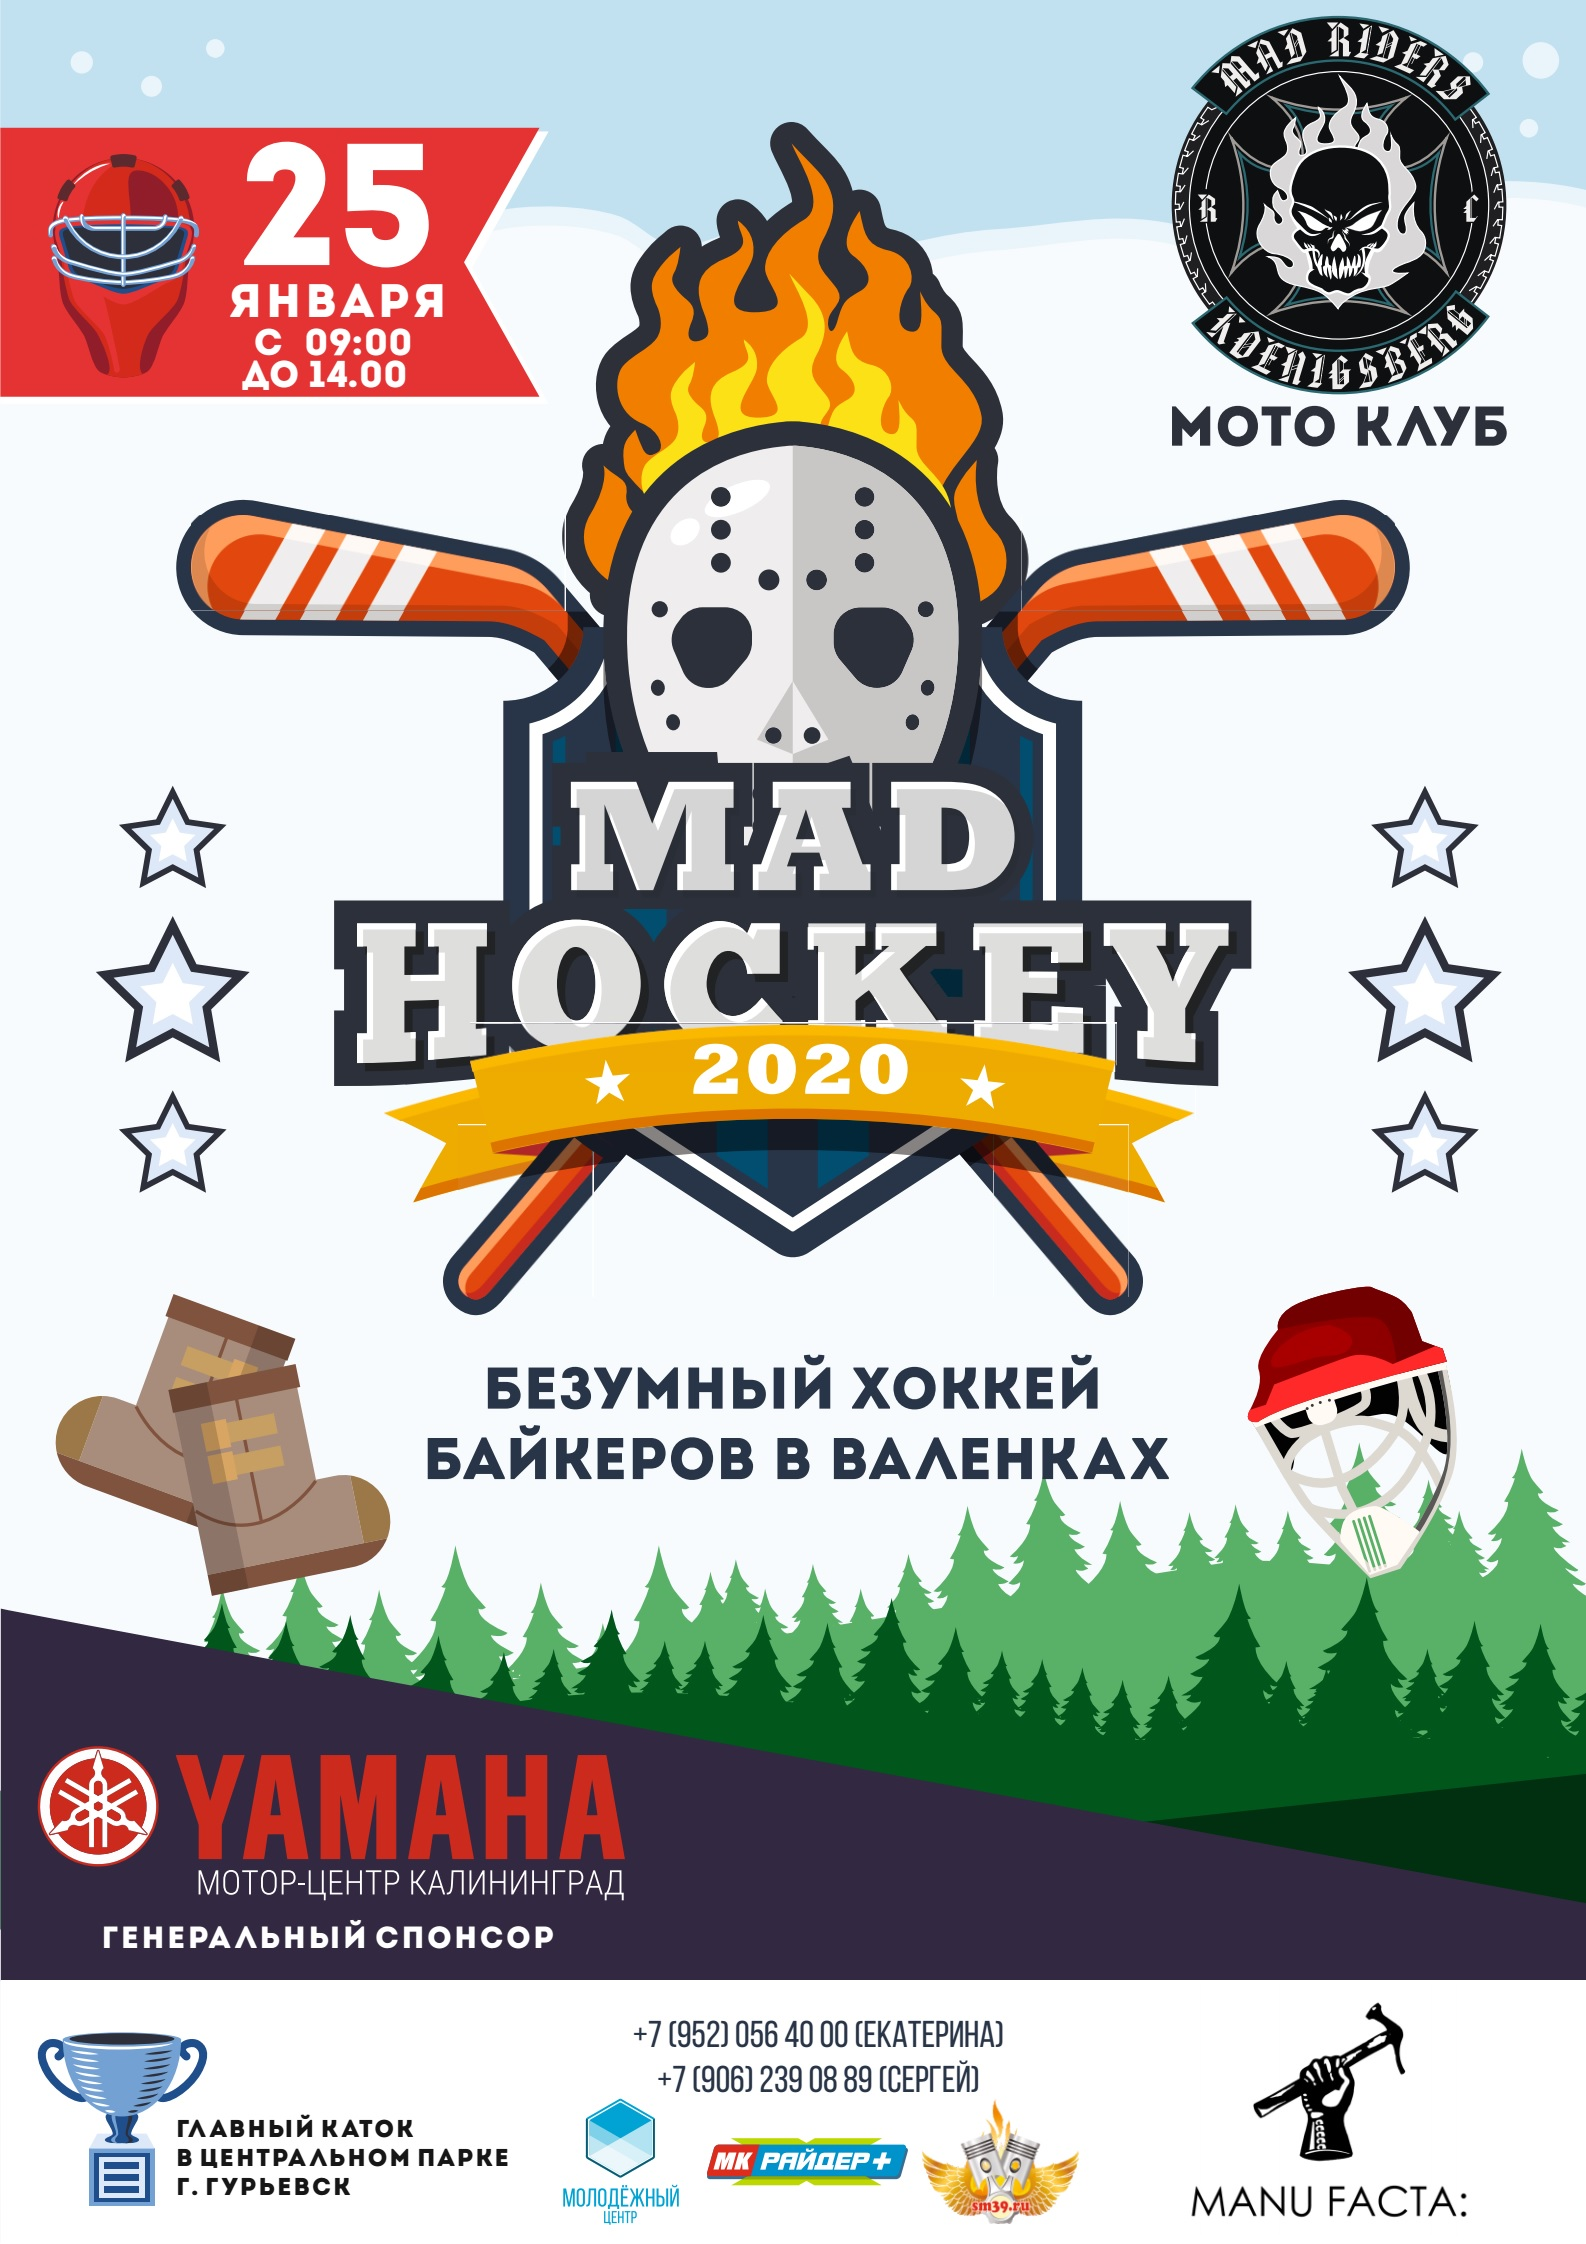 25 января, MAD HOCKEY 2020